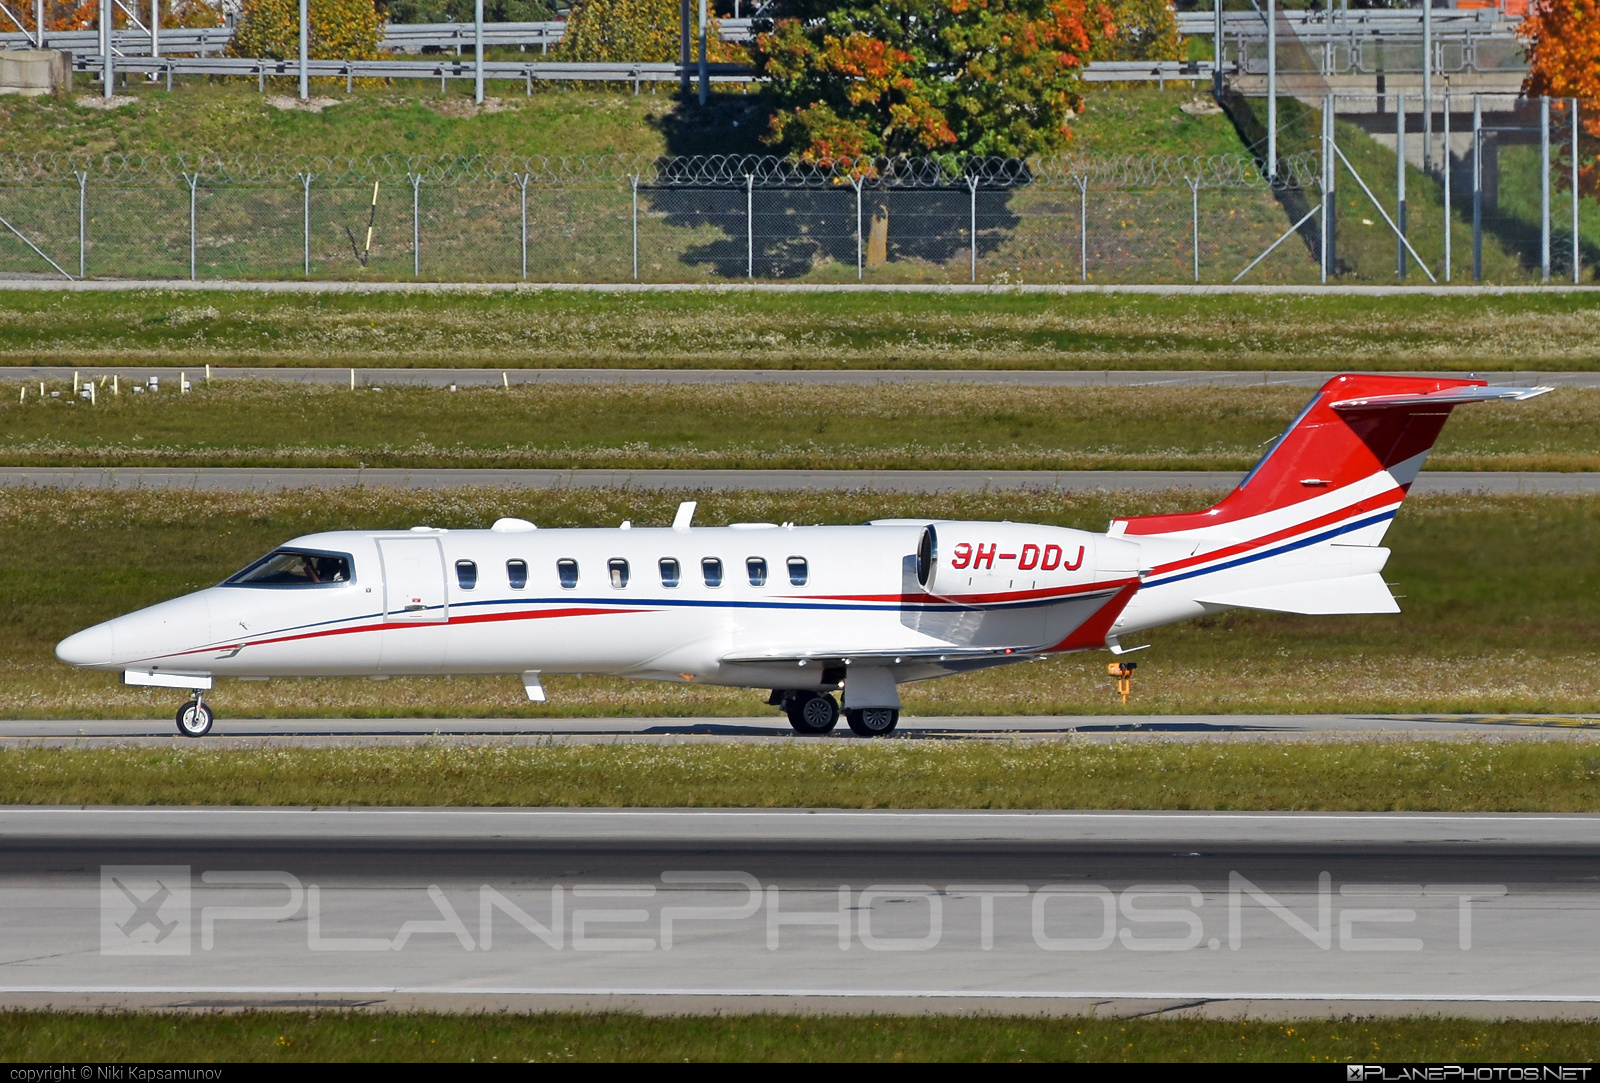 Kermas International Ltd. Bombardier Learjet 75 - 9H-DDJ #bombardier #learjet #learjet75